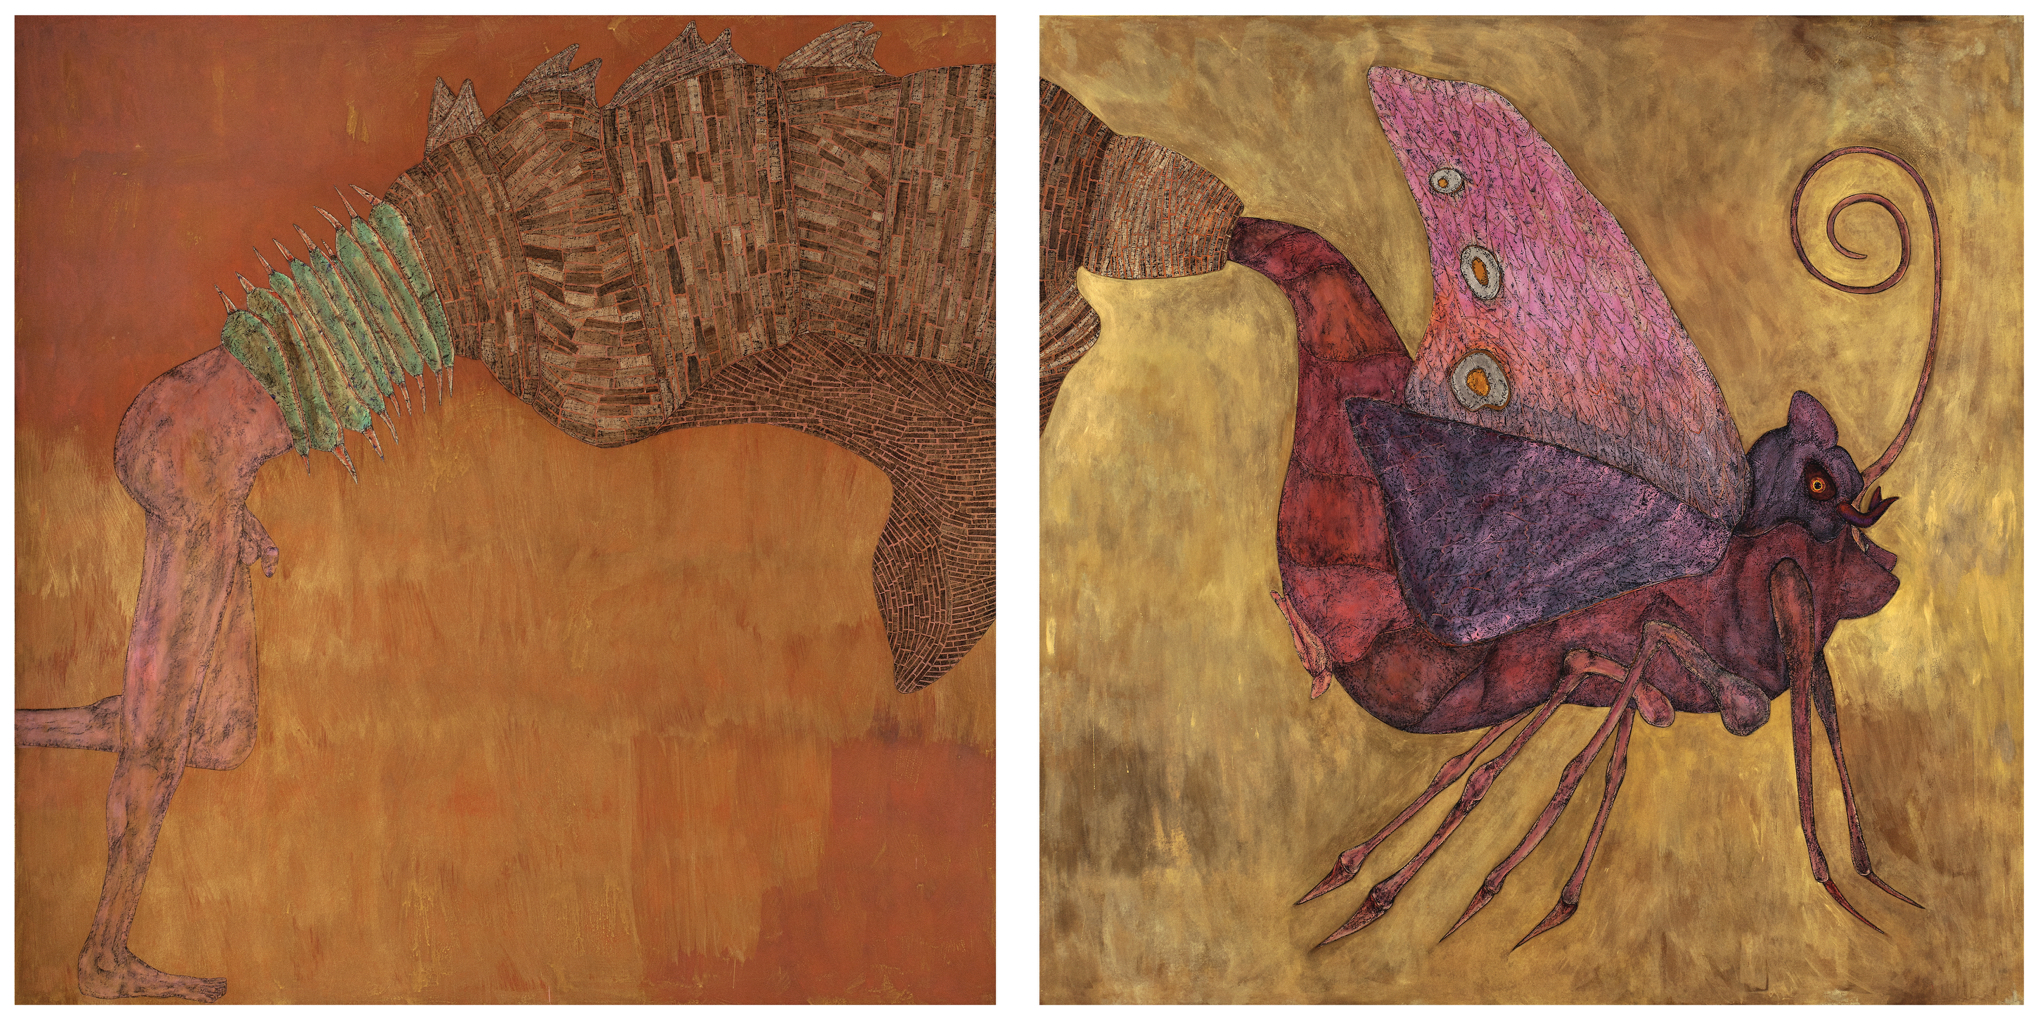 Carlos Fragoso  (B. 1954)  The Metamorphosis , 2014 Acrylic, oil, charcoal, papyrus and collage on paper Diptych: Each panel: 72 x 72 inches Overall: 72 x 144 inches